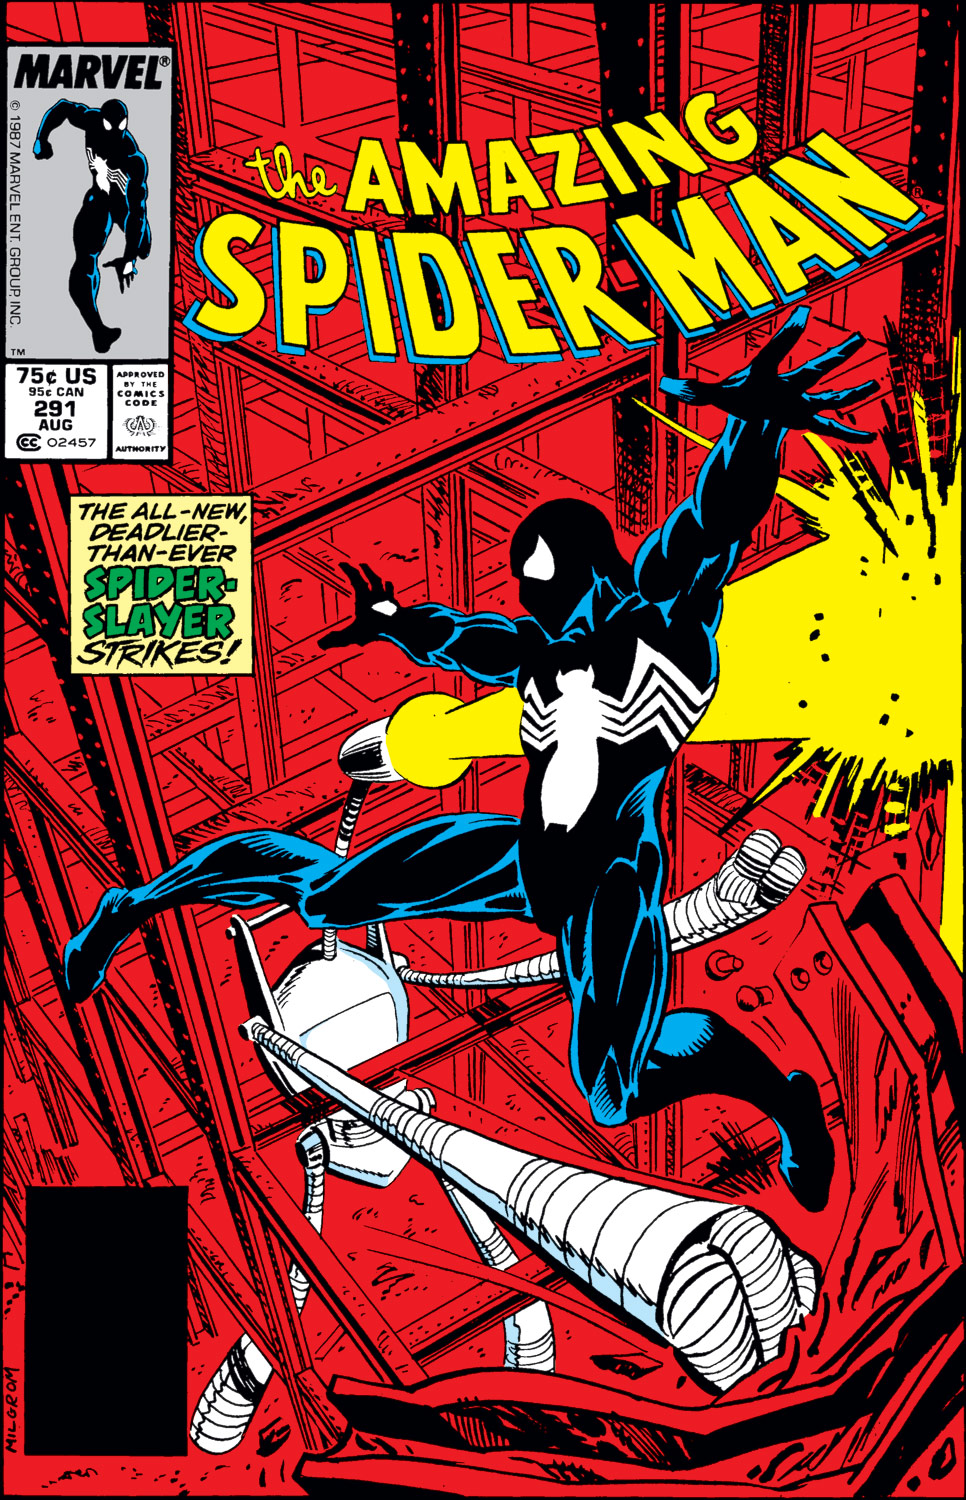 The Amazing Spider-Man (1963) #291